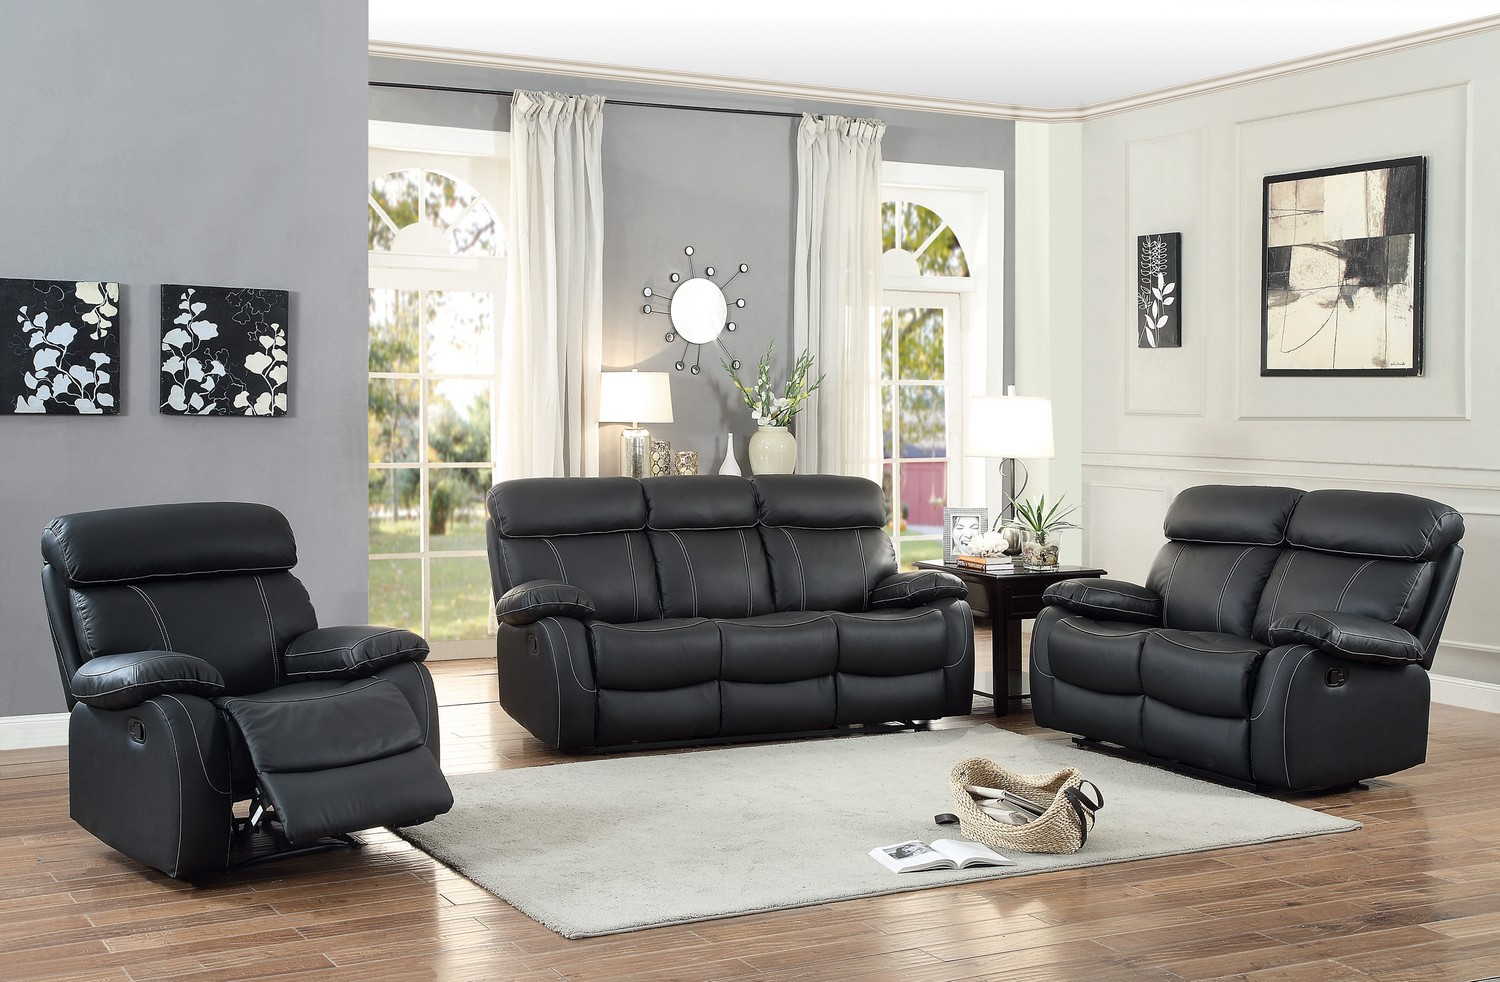 Homelegance pendu reclining sofa set top grain leather for Matching living room furniture sets